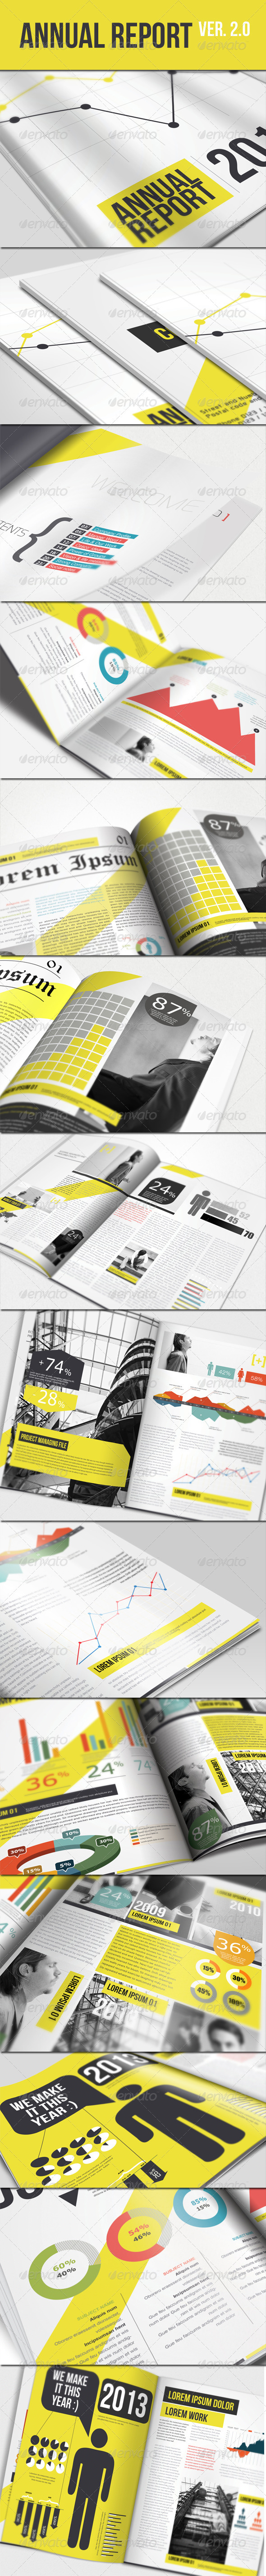 Annual Report Brochure Ver 2.0 - Corporate Brochures